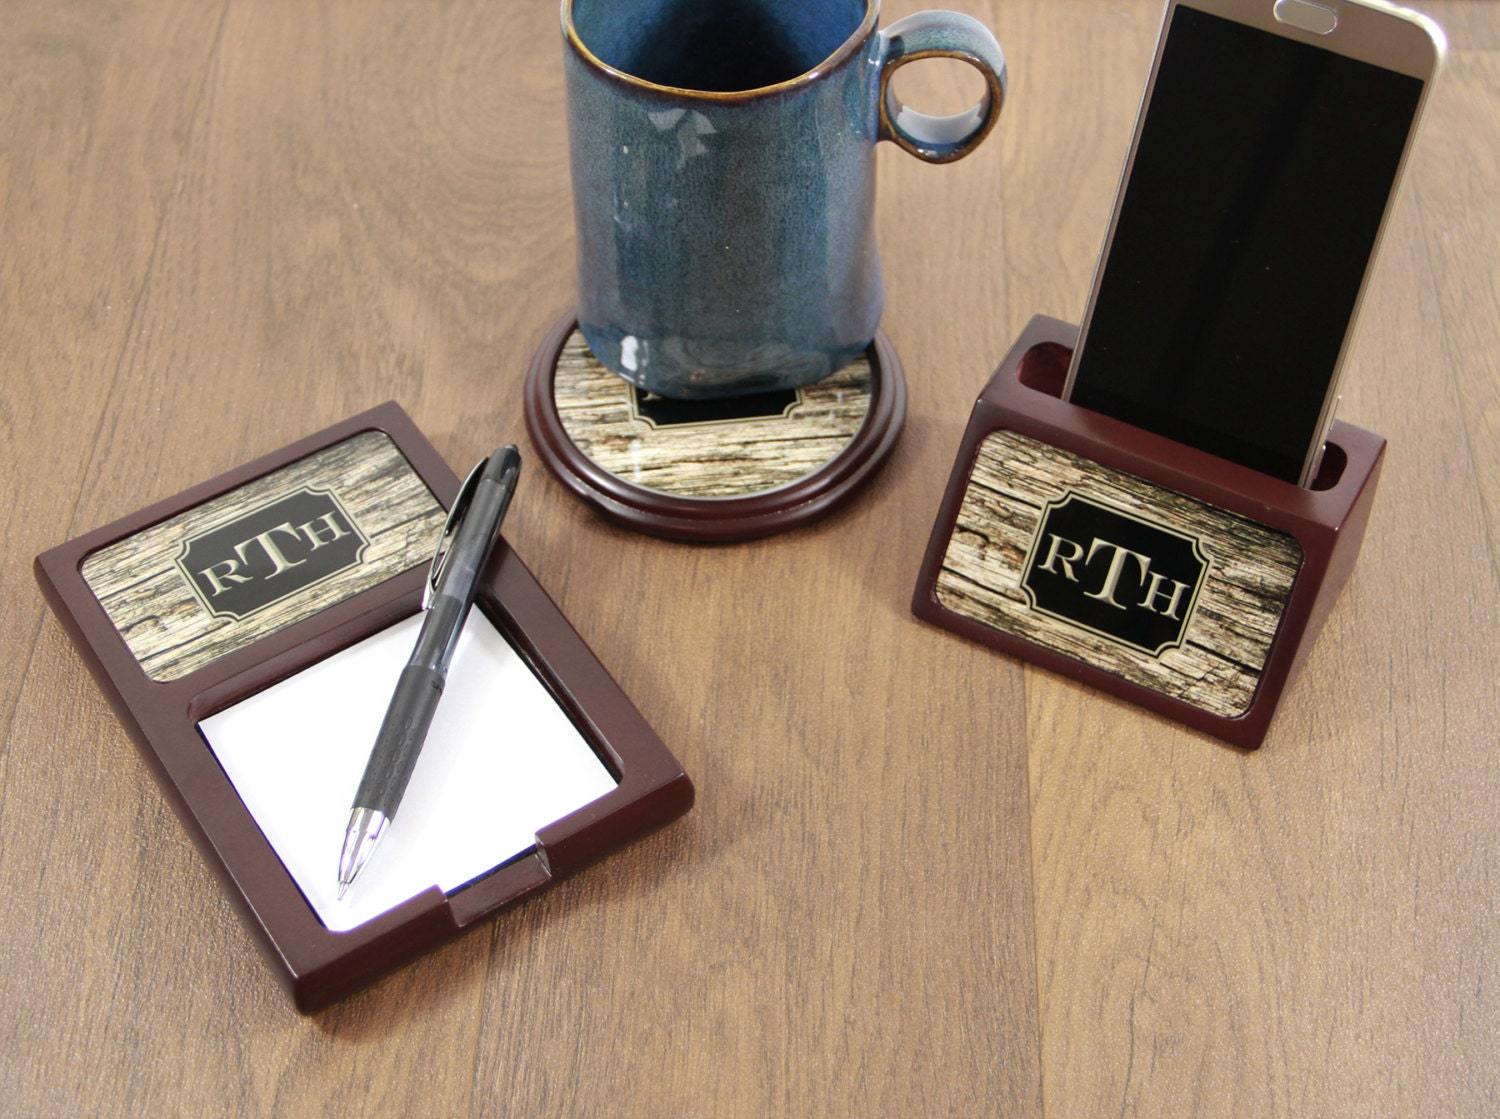 Christmas gifts for him wood mahogany desk accessories set